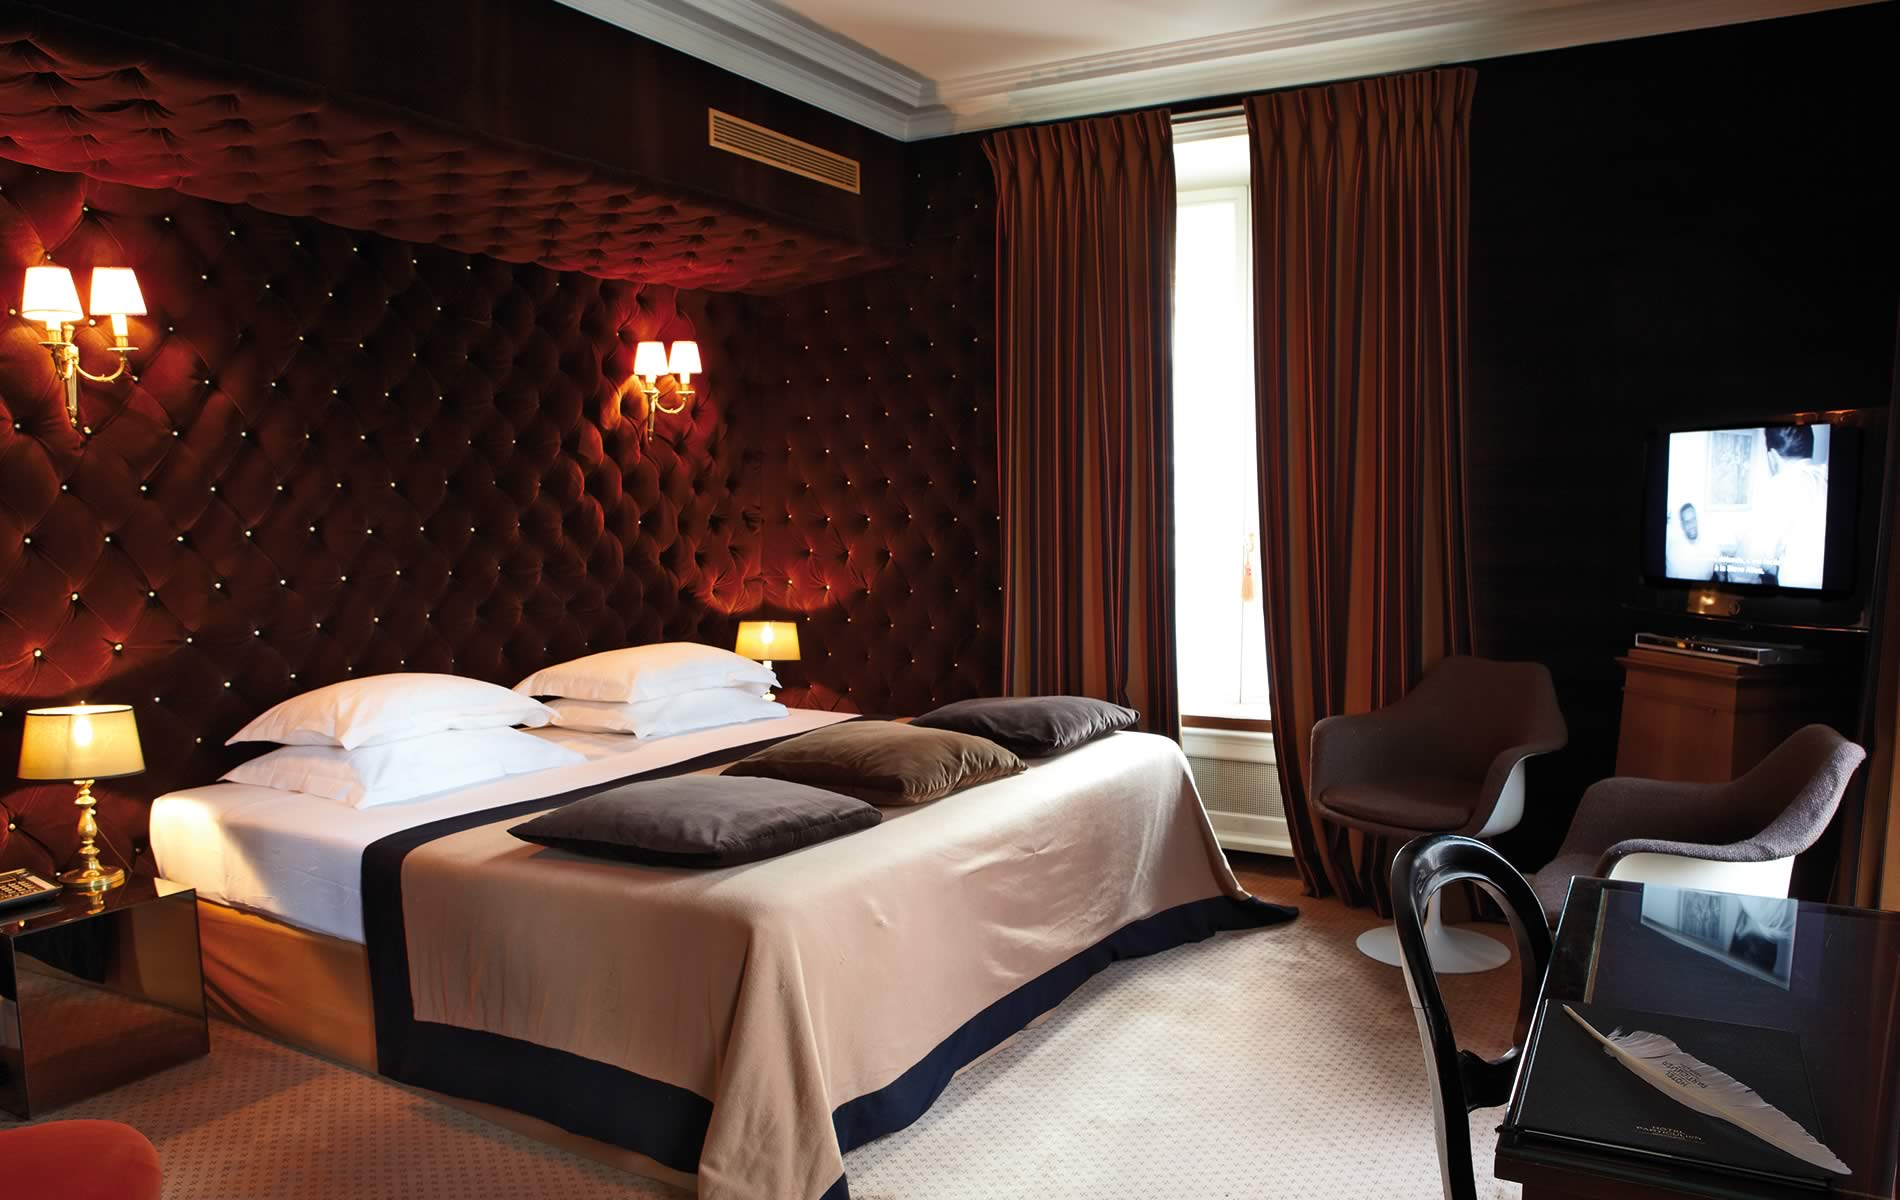 Hotel particulier montmartre in paris decoholic for Hotel design paris 11